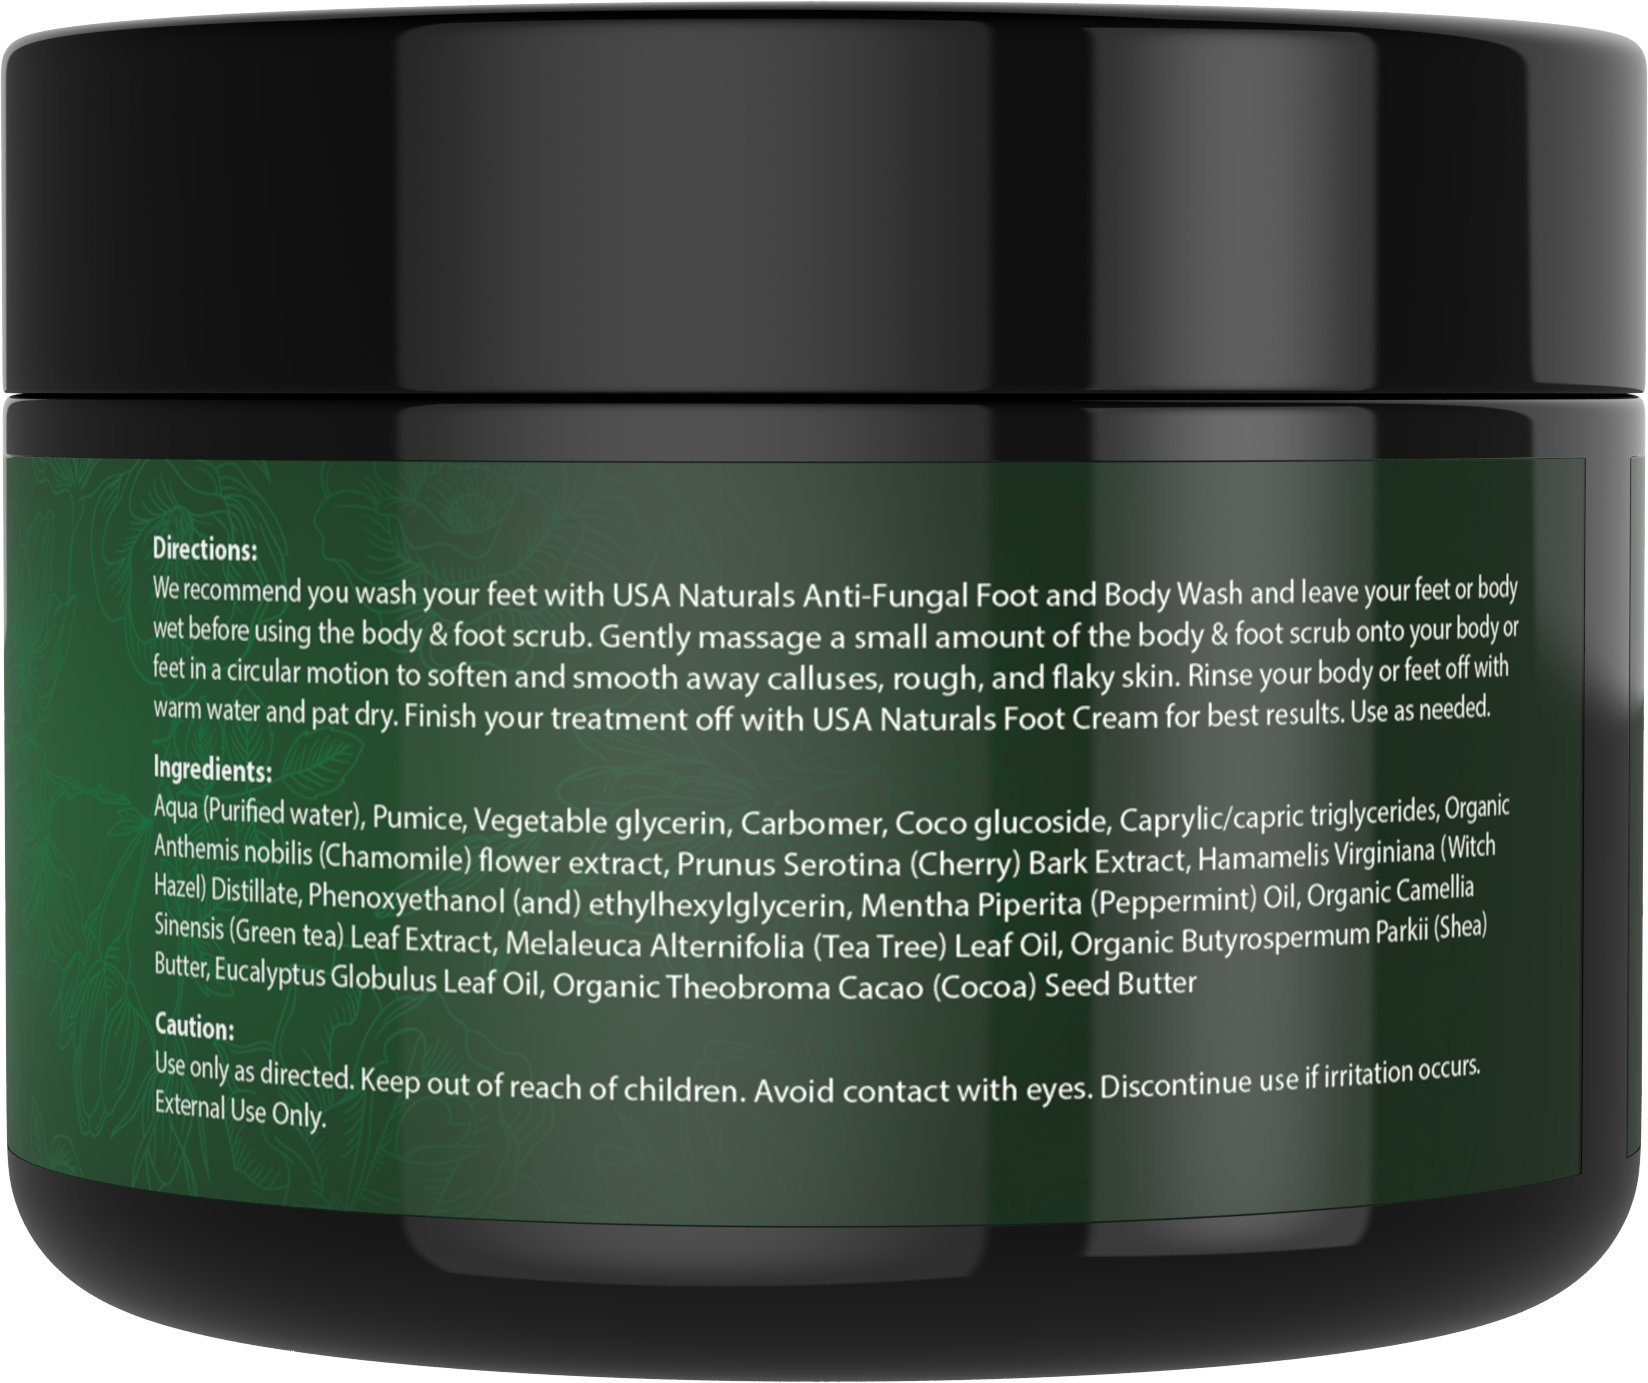 Tea Tree Oil Foot and Body Scrub - Antifungal Treatment - Exfoliating Scrub with a Unique Blend of Essential Oils - Smooths Calluses - Helps With Athlete's Foot, Acne, Jock Itch & Dead, Dry Skin by USA Naturals (Image #4)